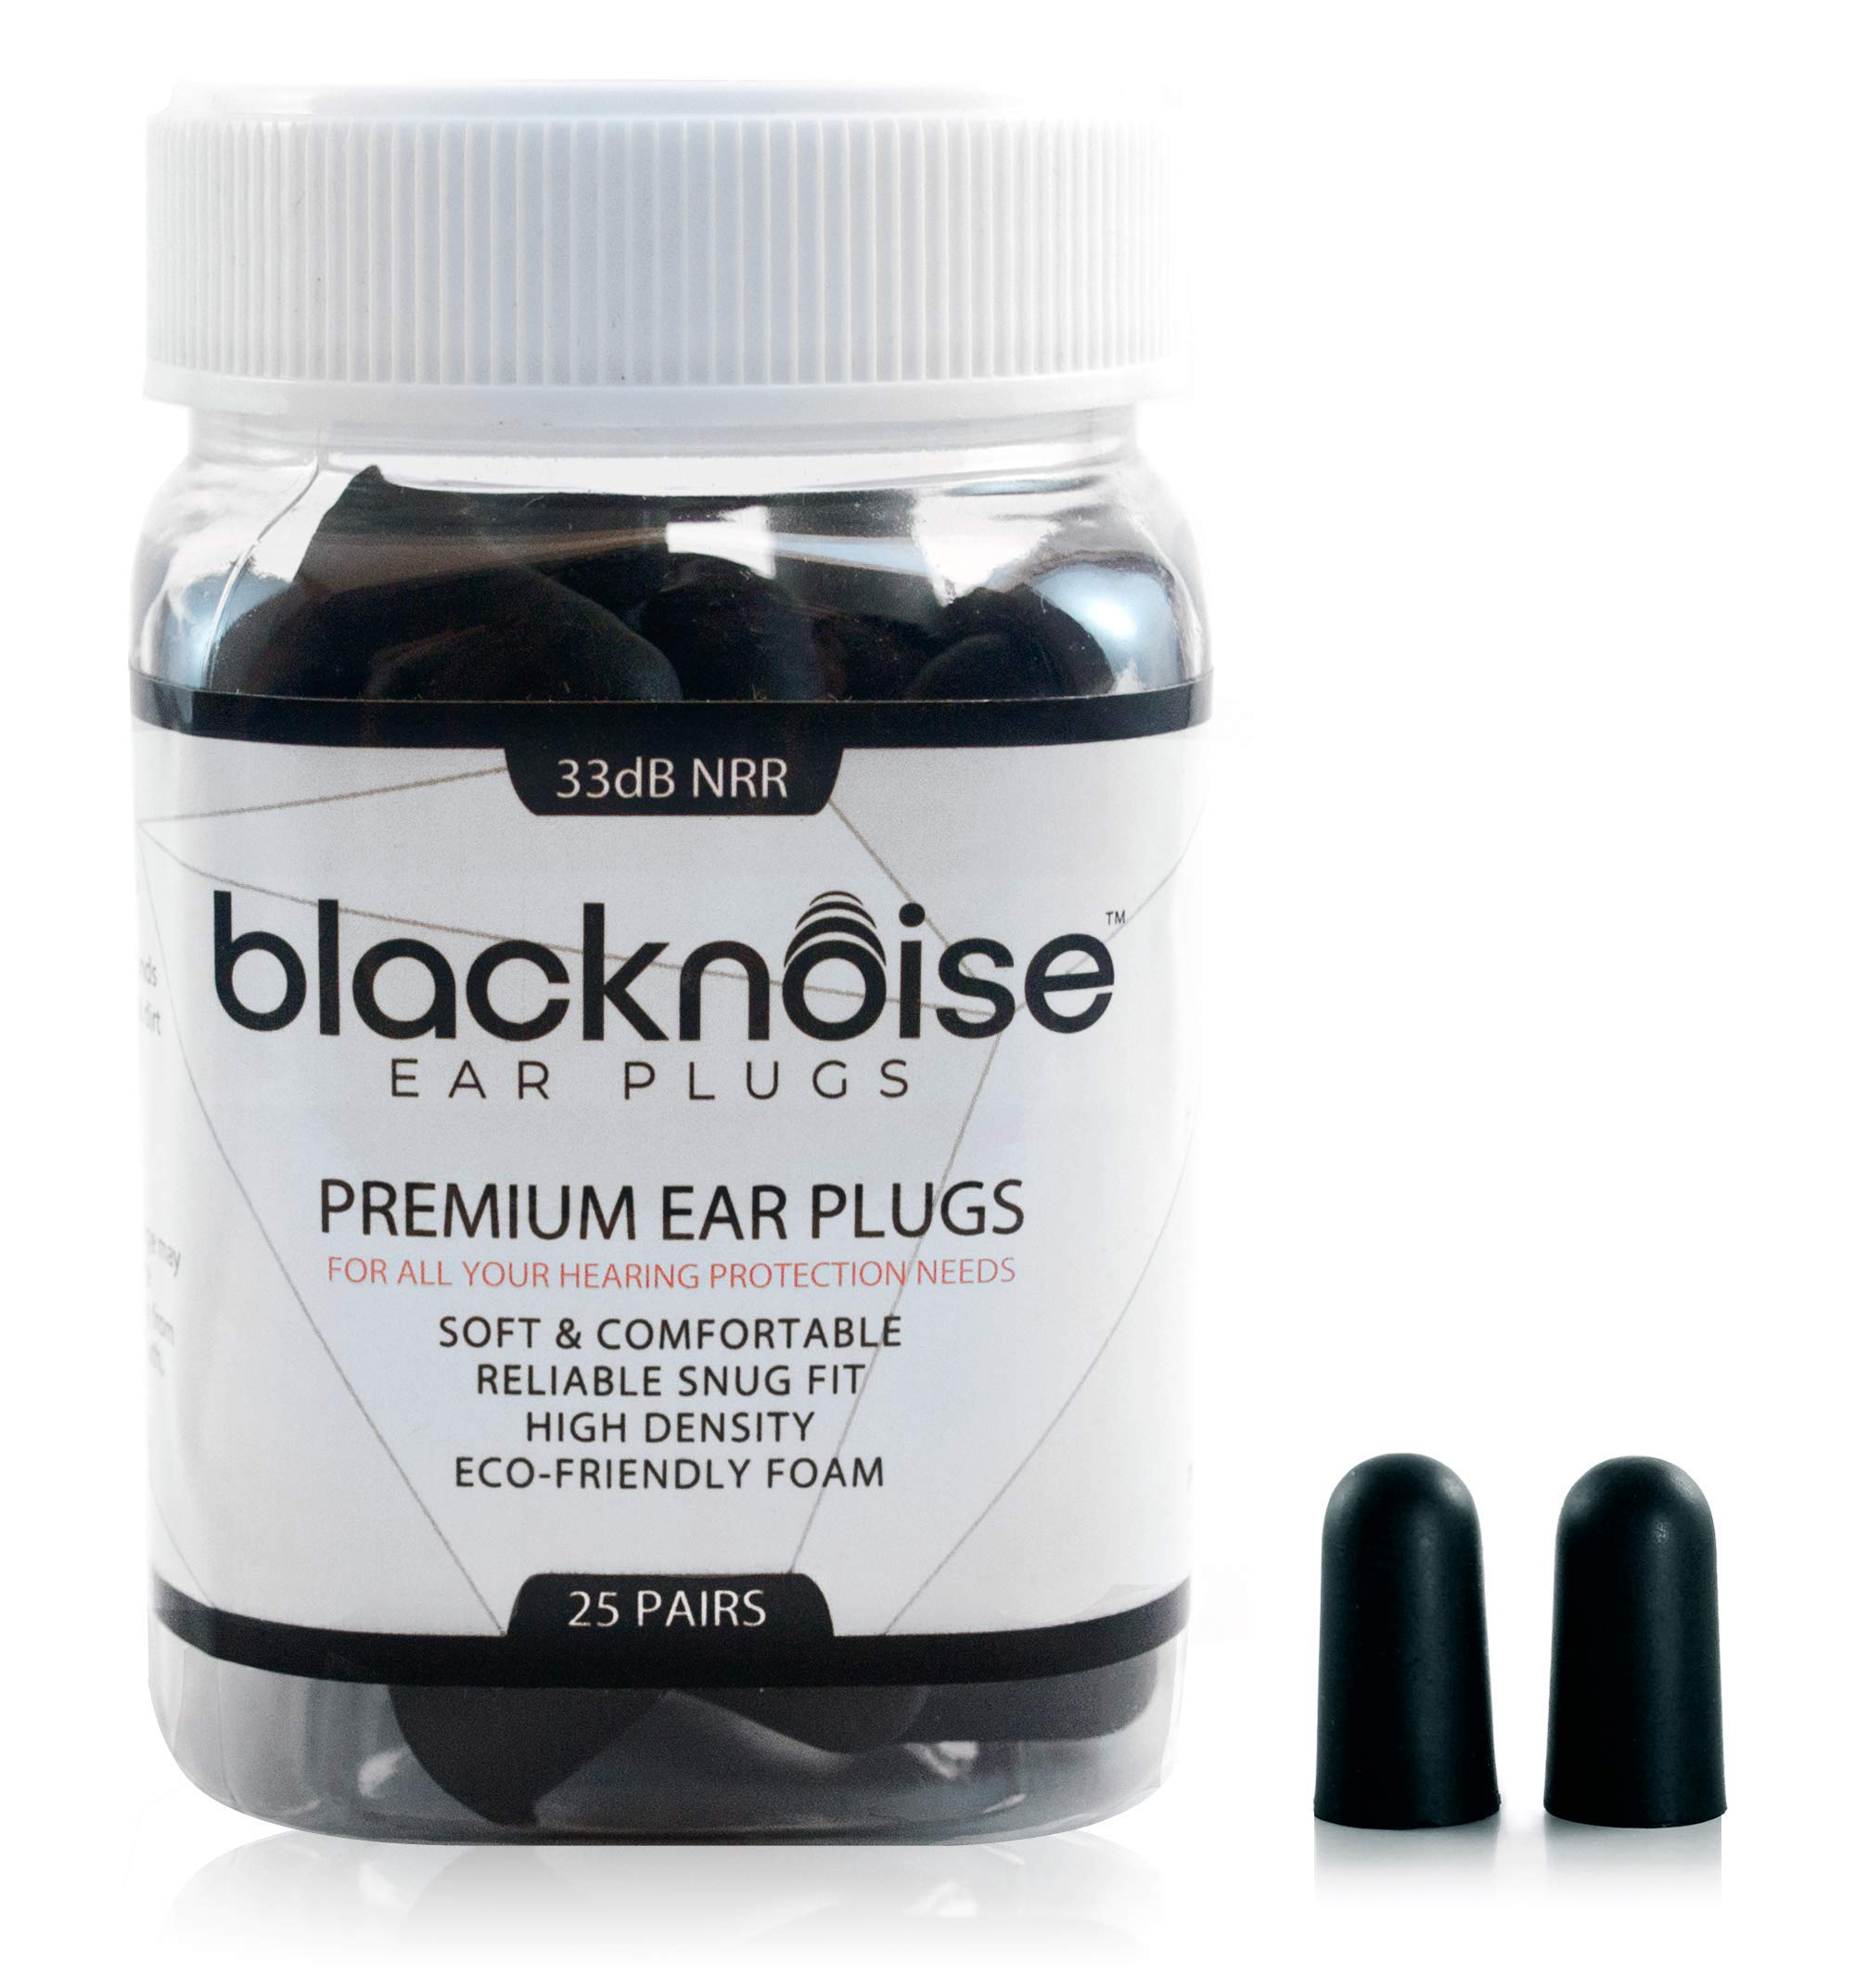 Black Noise Premium Ear Plugs | 33db NRR Noise Cancelling, Soft and Durable Ear Plugs for Concerts, Sleeping, Musicians, Motorcycles, Shooting, Loud Work Environments, Loud Sports, Travel and Study